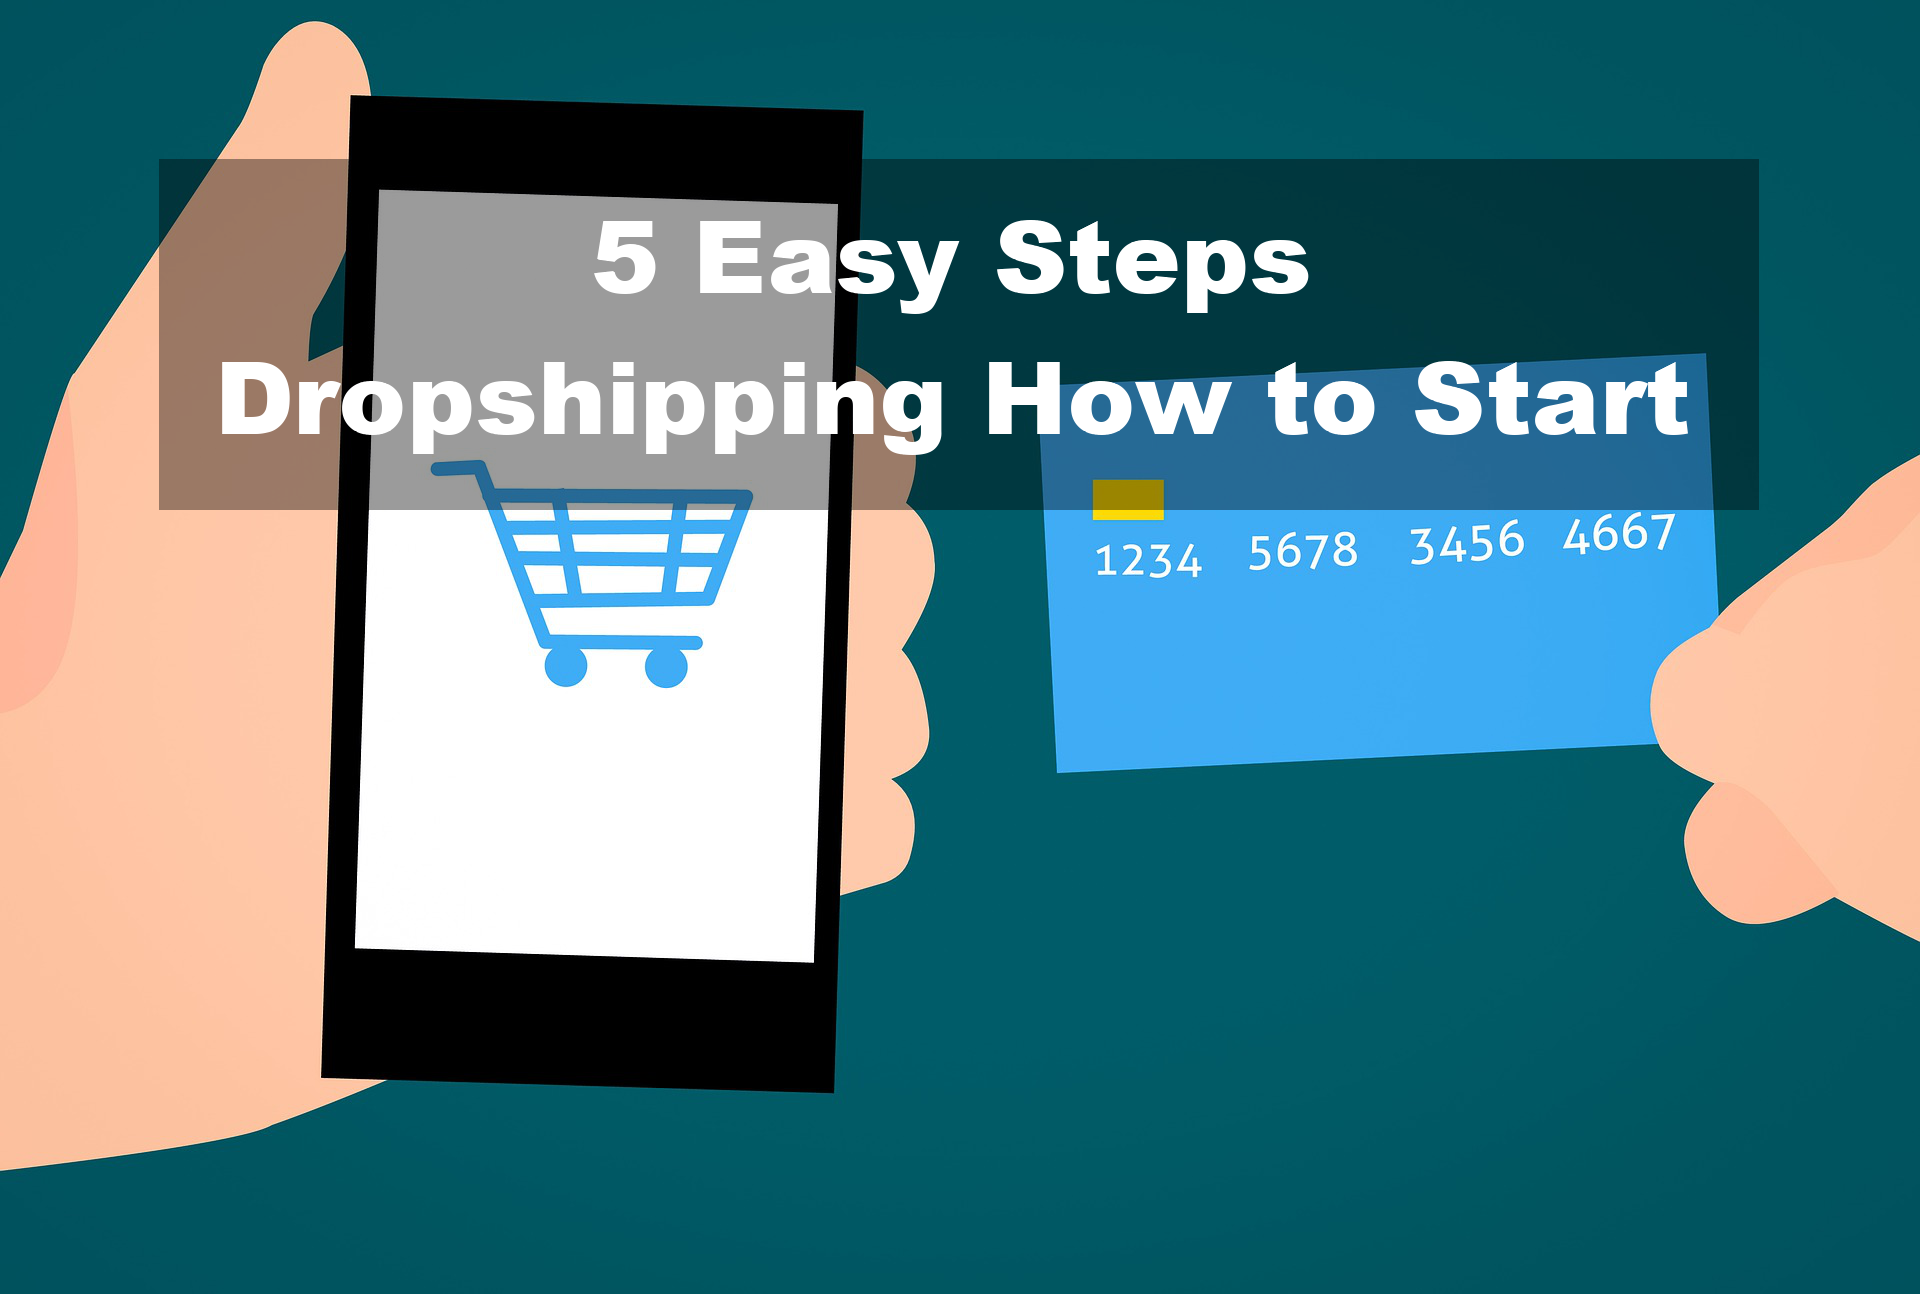 Dropshipping How to Start